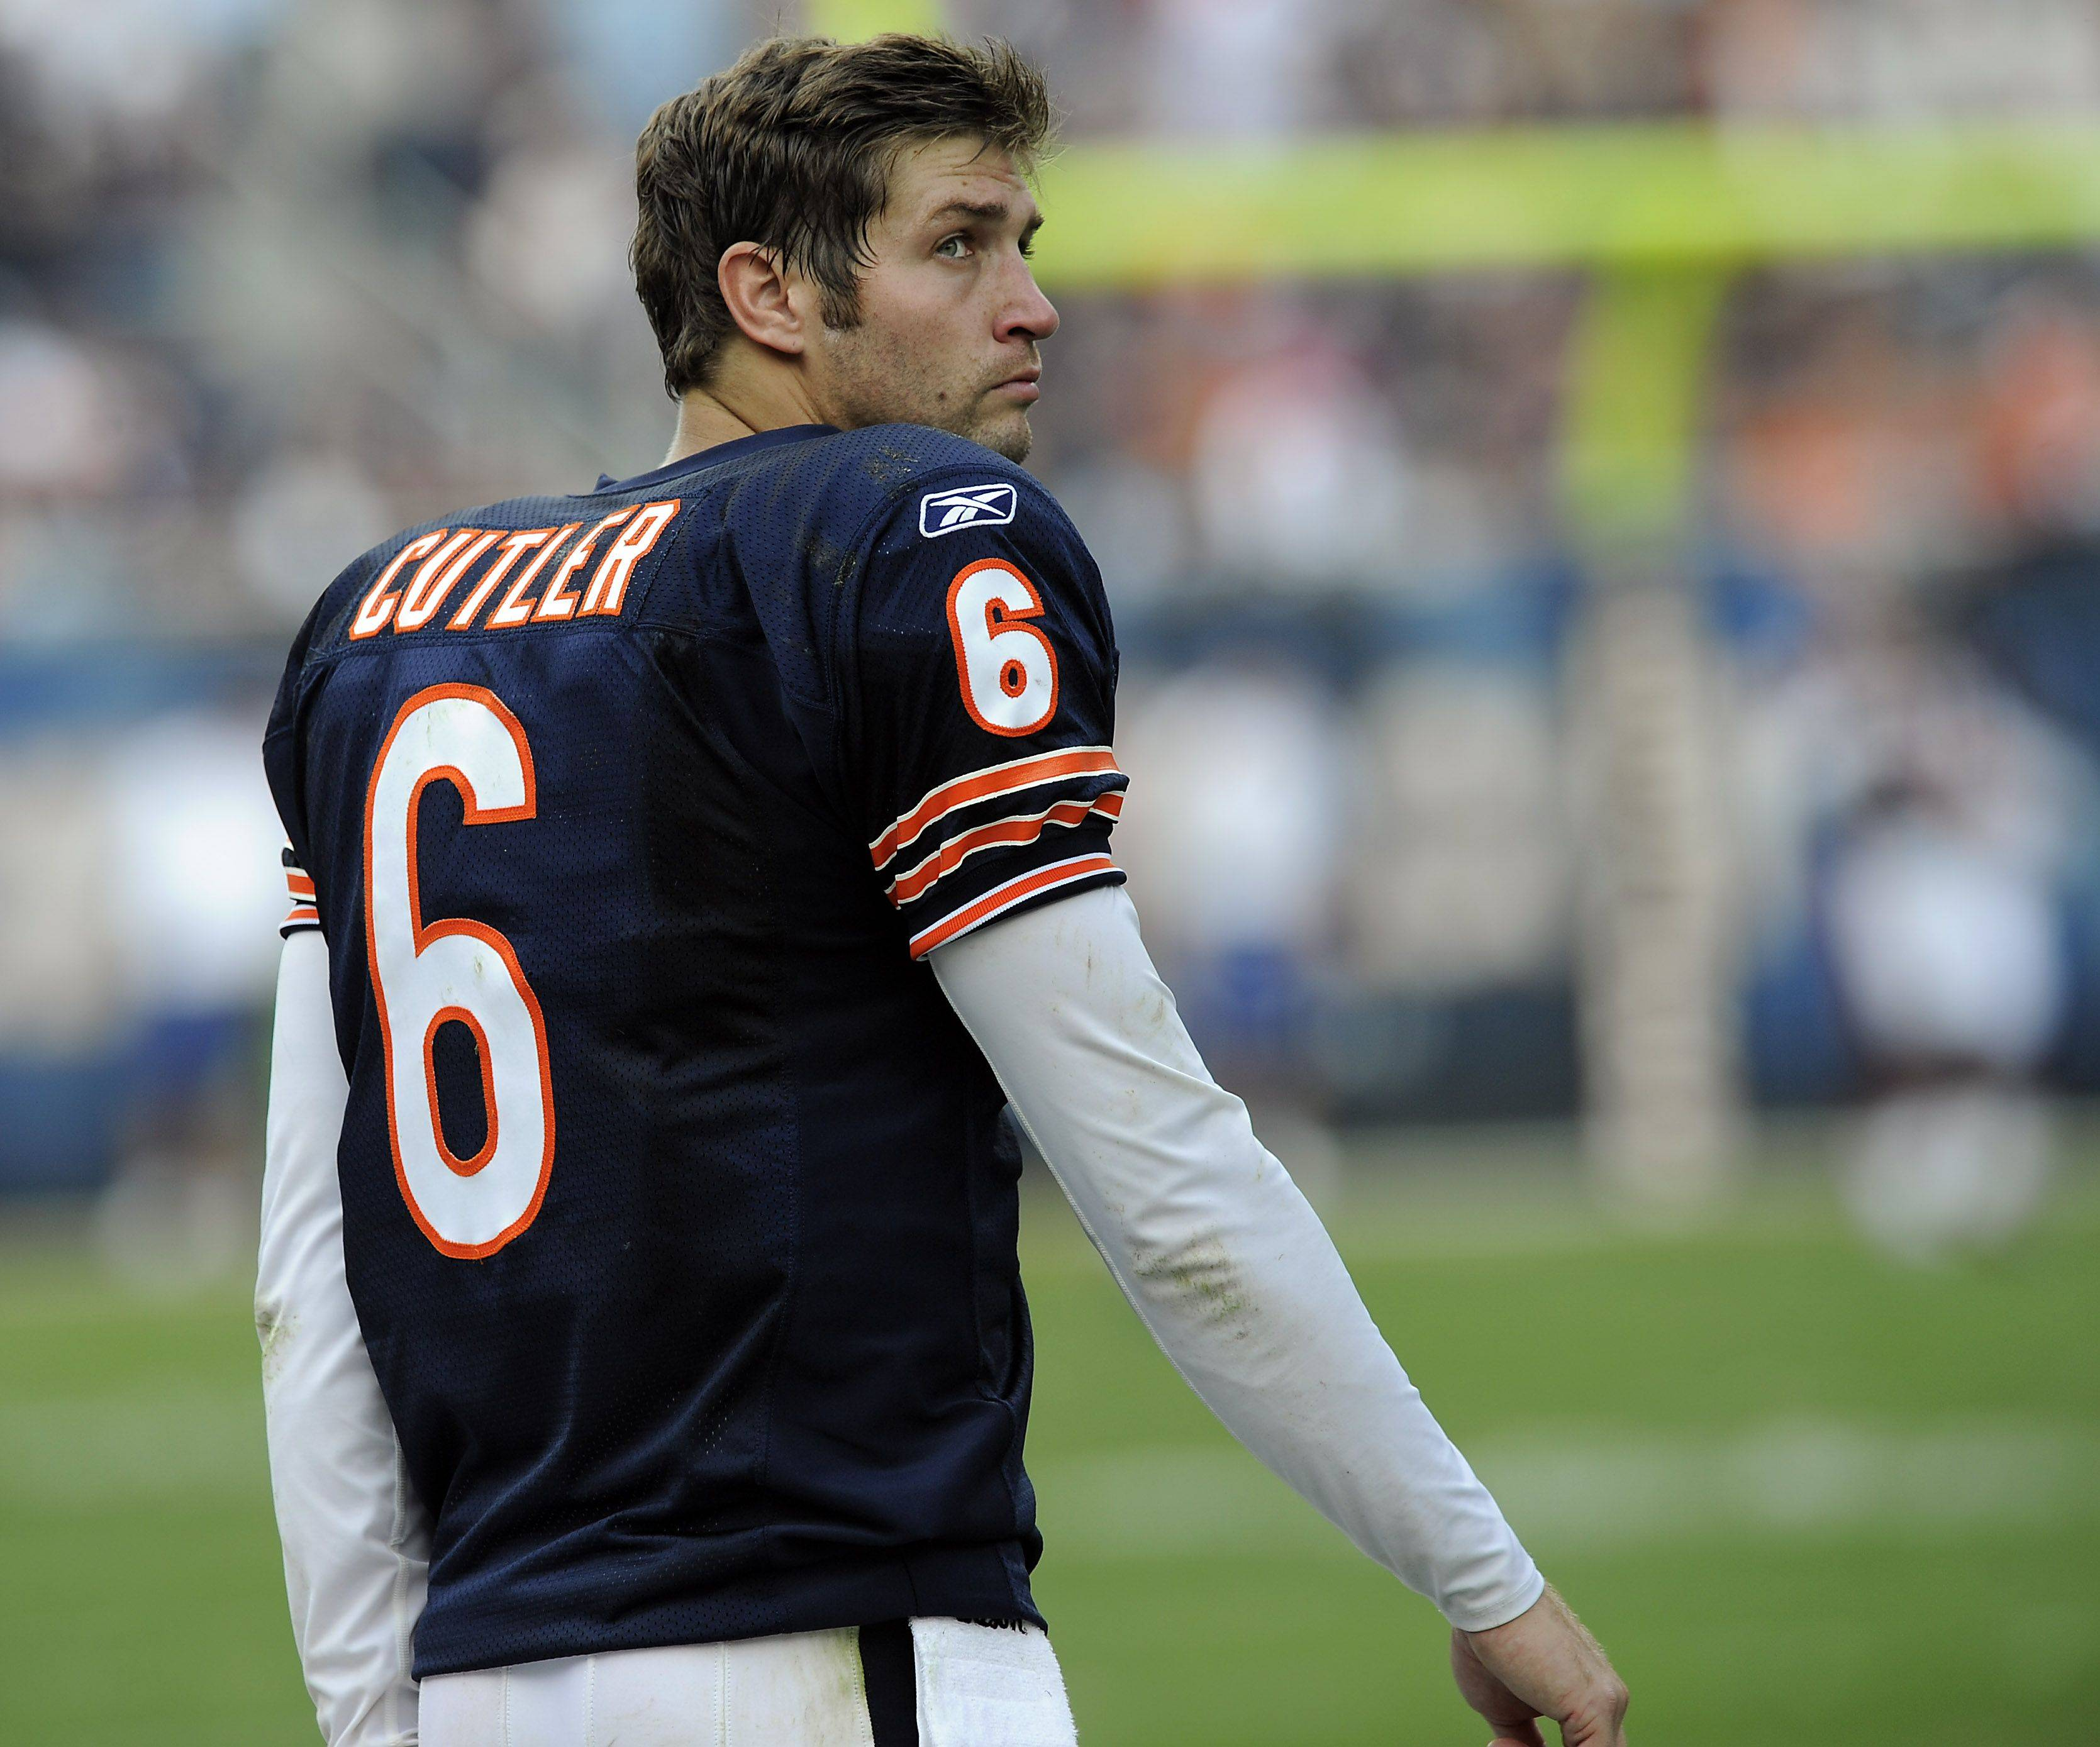 Jay Cutler was sacked five times Sunday in the Bears' victory over Atlanta, but he also completed 22 of 32 passes for 312 yards.